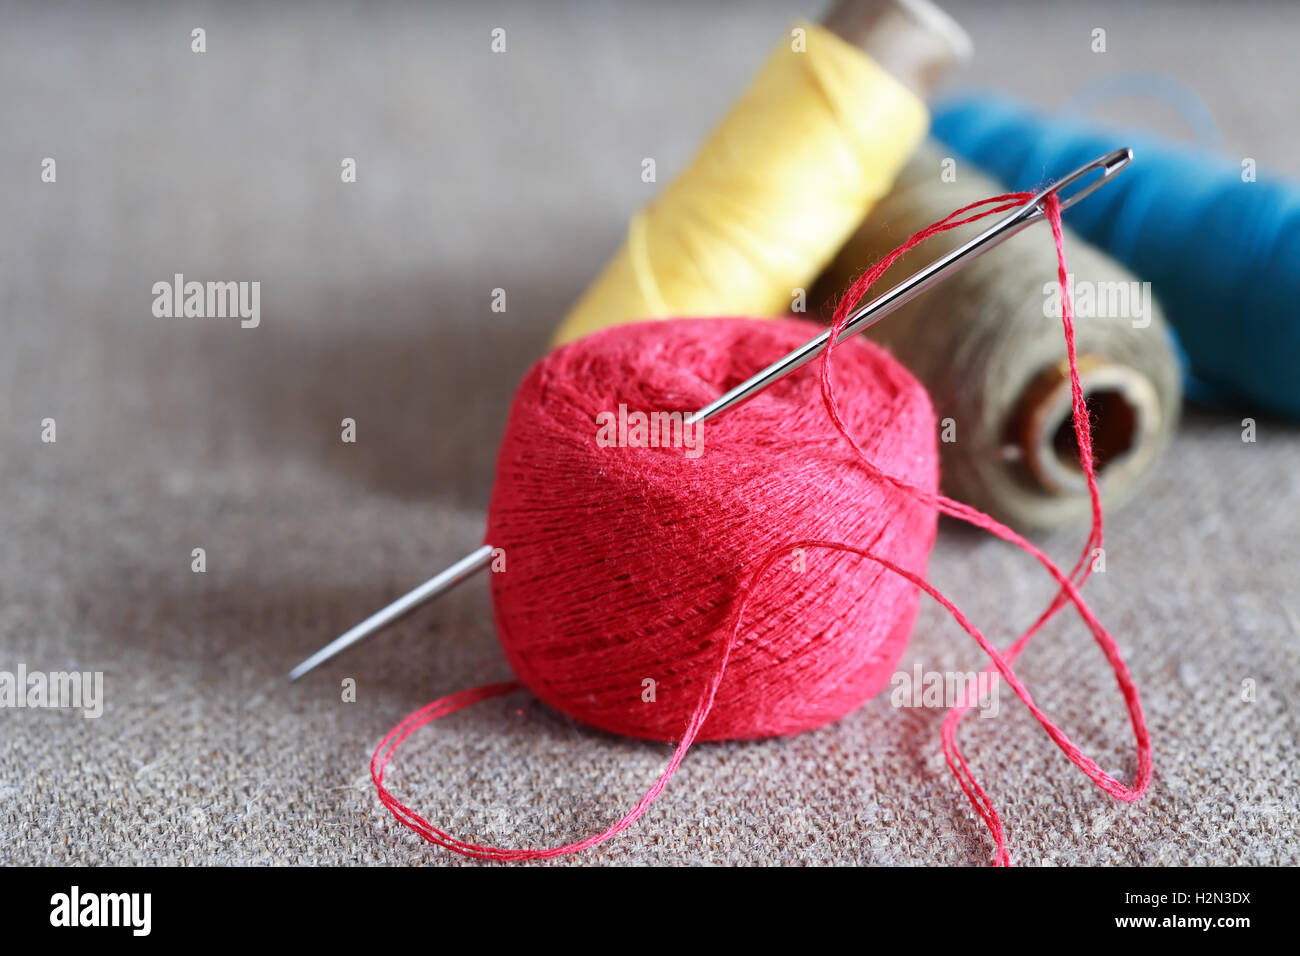 Sewing Tools - Stock Image